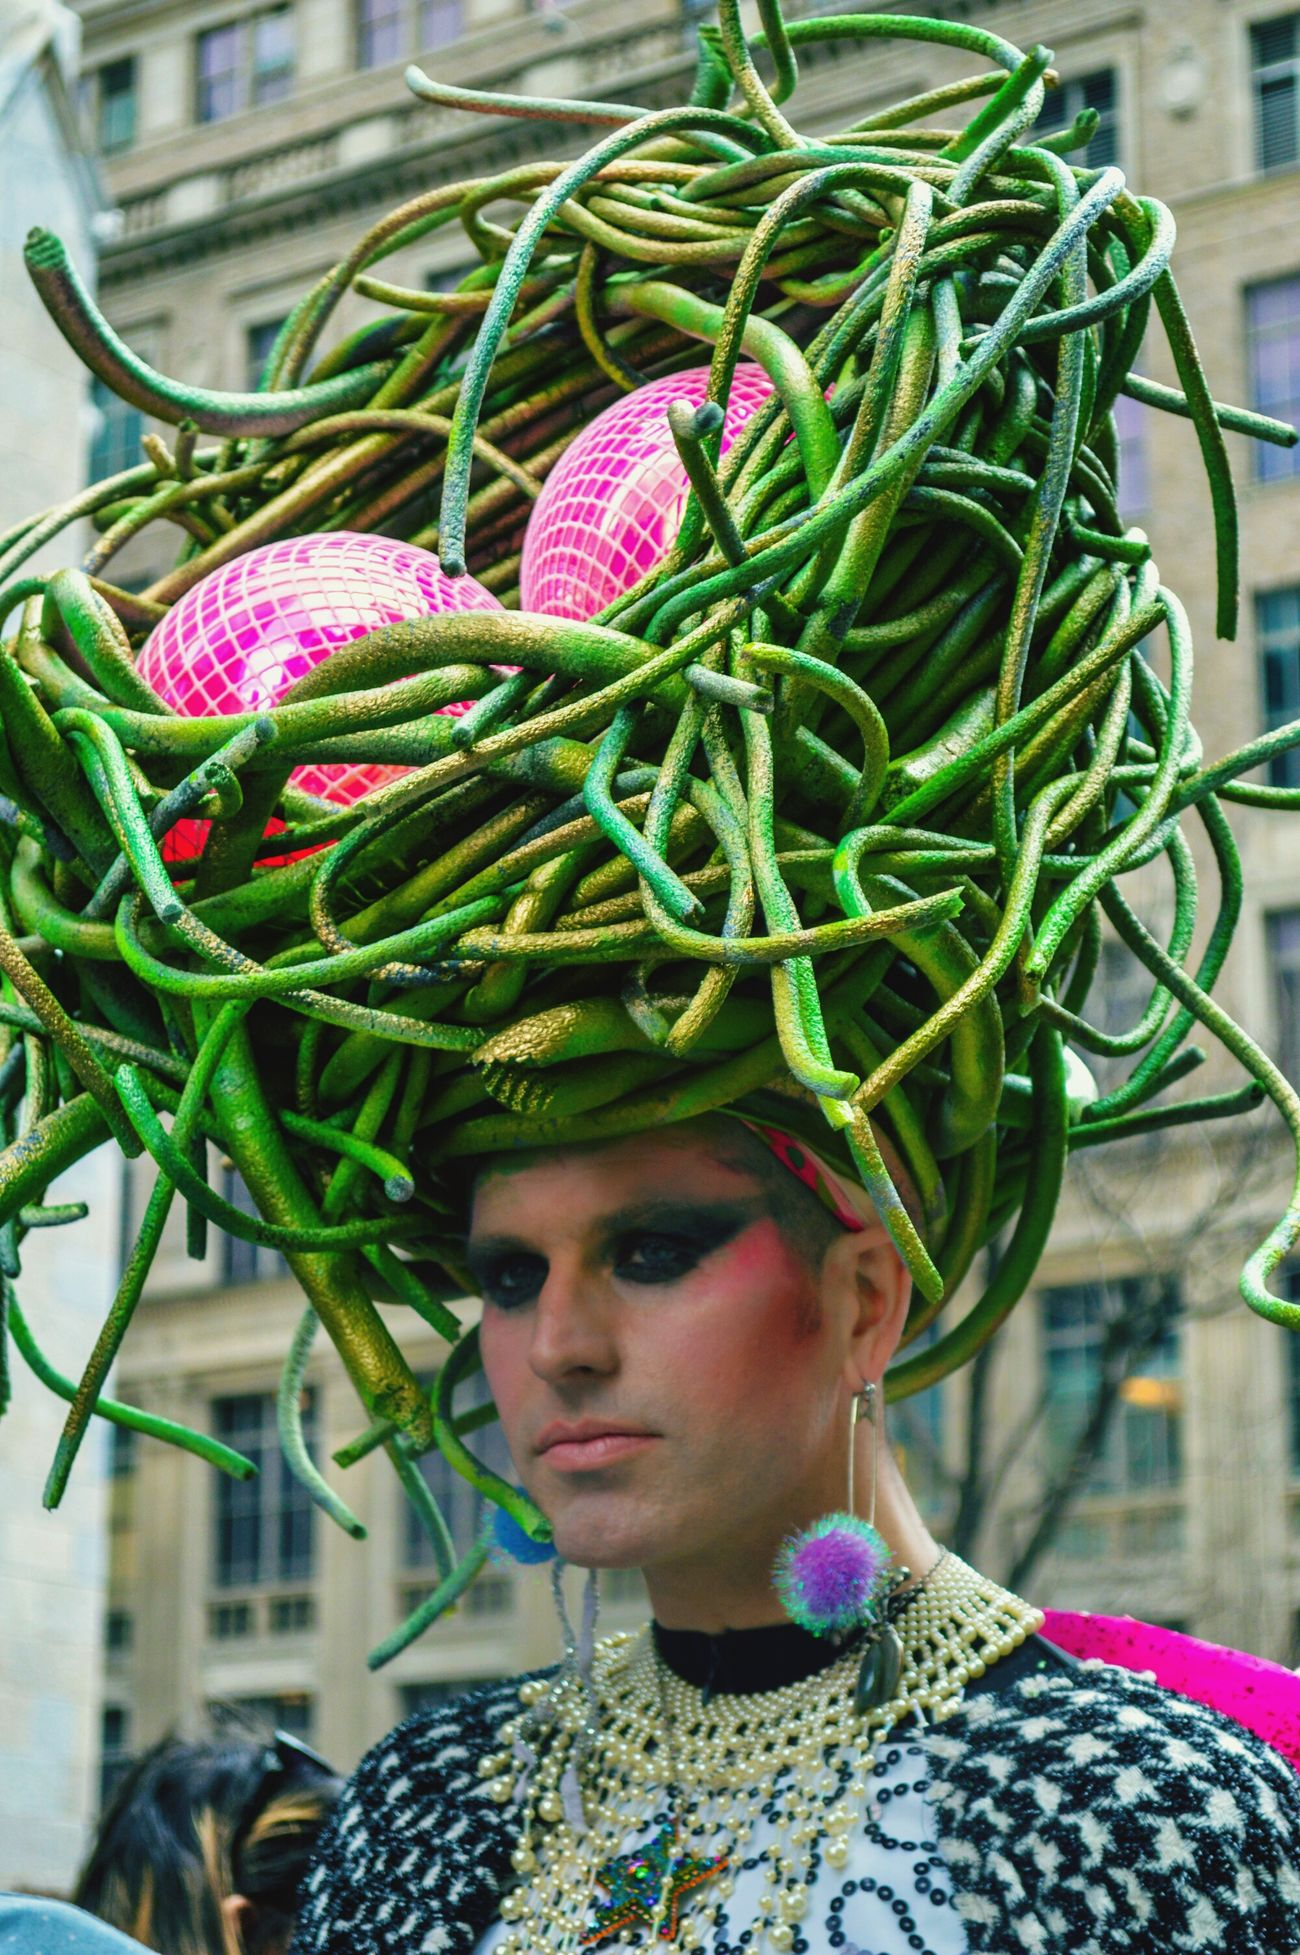 Big Hat Eggs Green Person Parade Costume Transgender Creative The Fashionist - 2015 EyeEm Awards